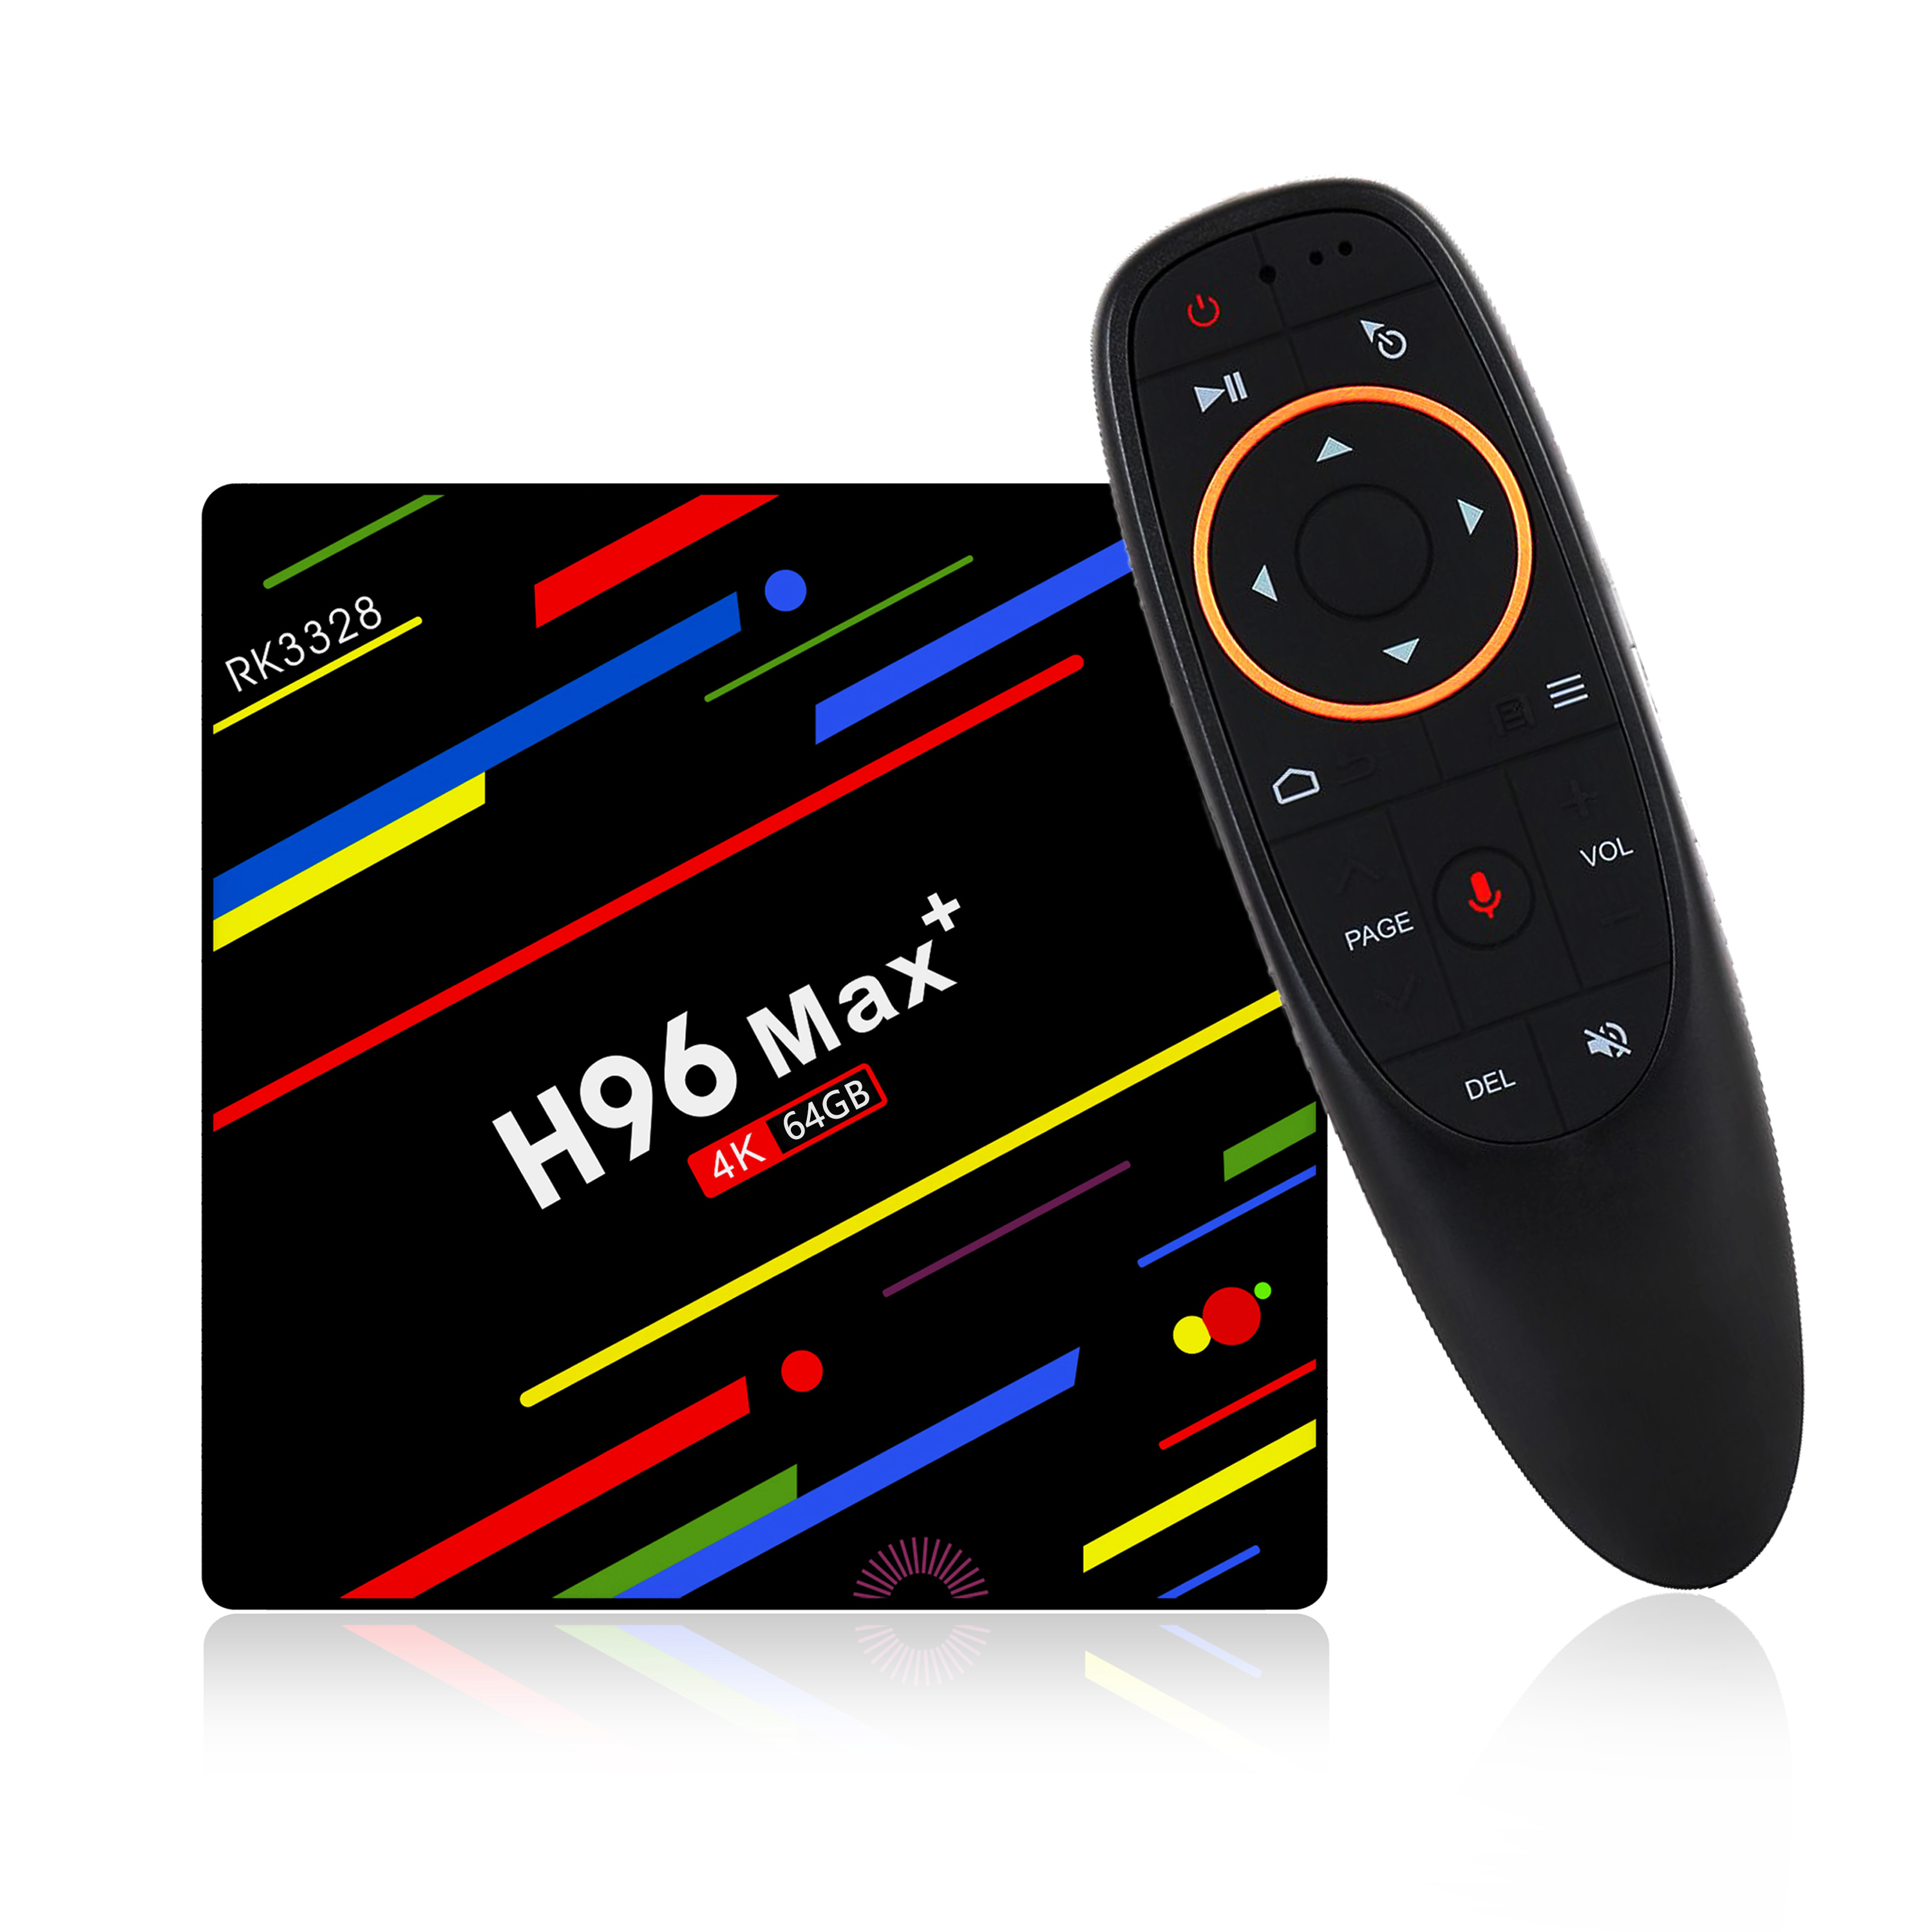 2018 Best Android 8 1 Android Tv Box H96 Max+ With Google Voice Control  Dual Wifi Set Top Box Supports Oem - Buy Android Tv Box,H96 Max+,Android  8 1